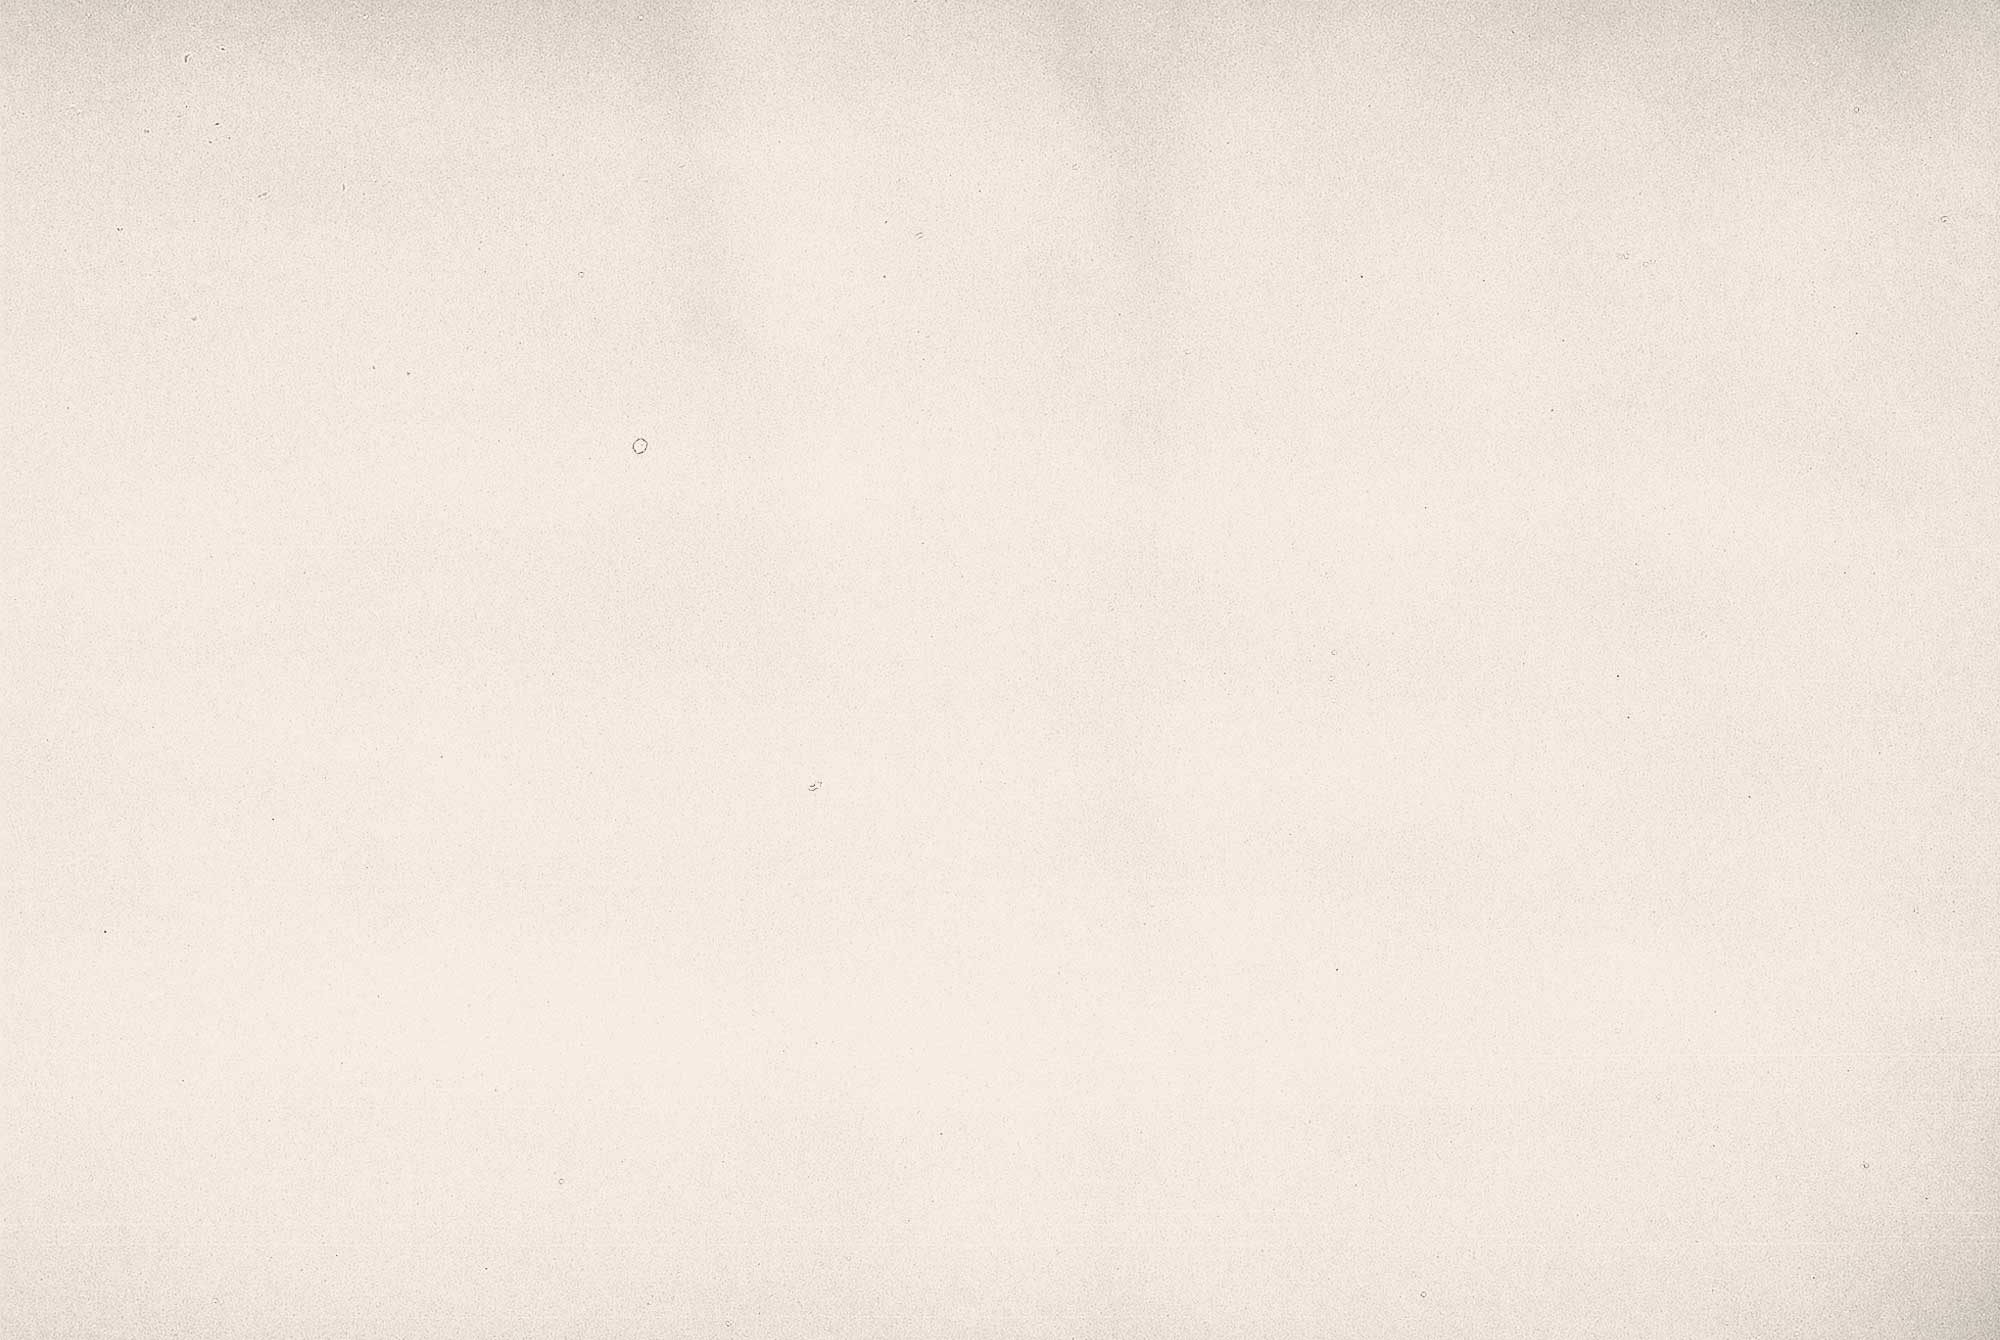 film grain texture white